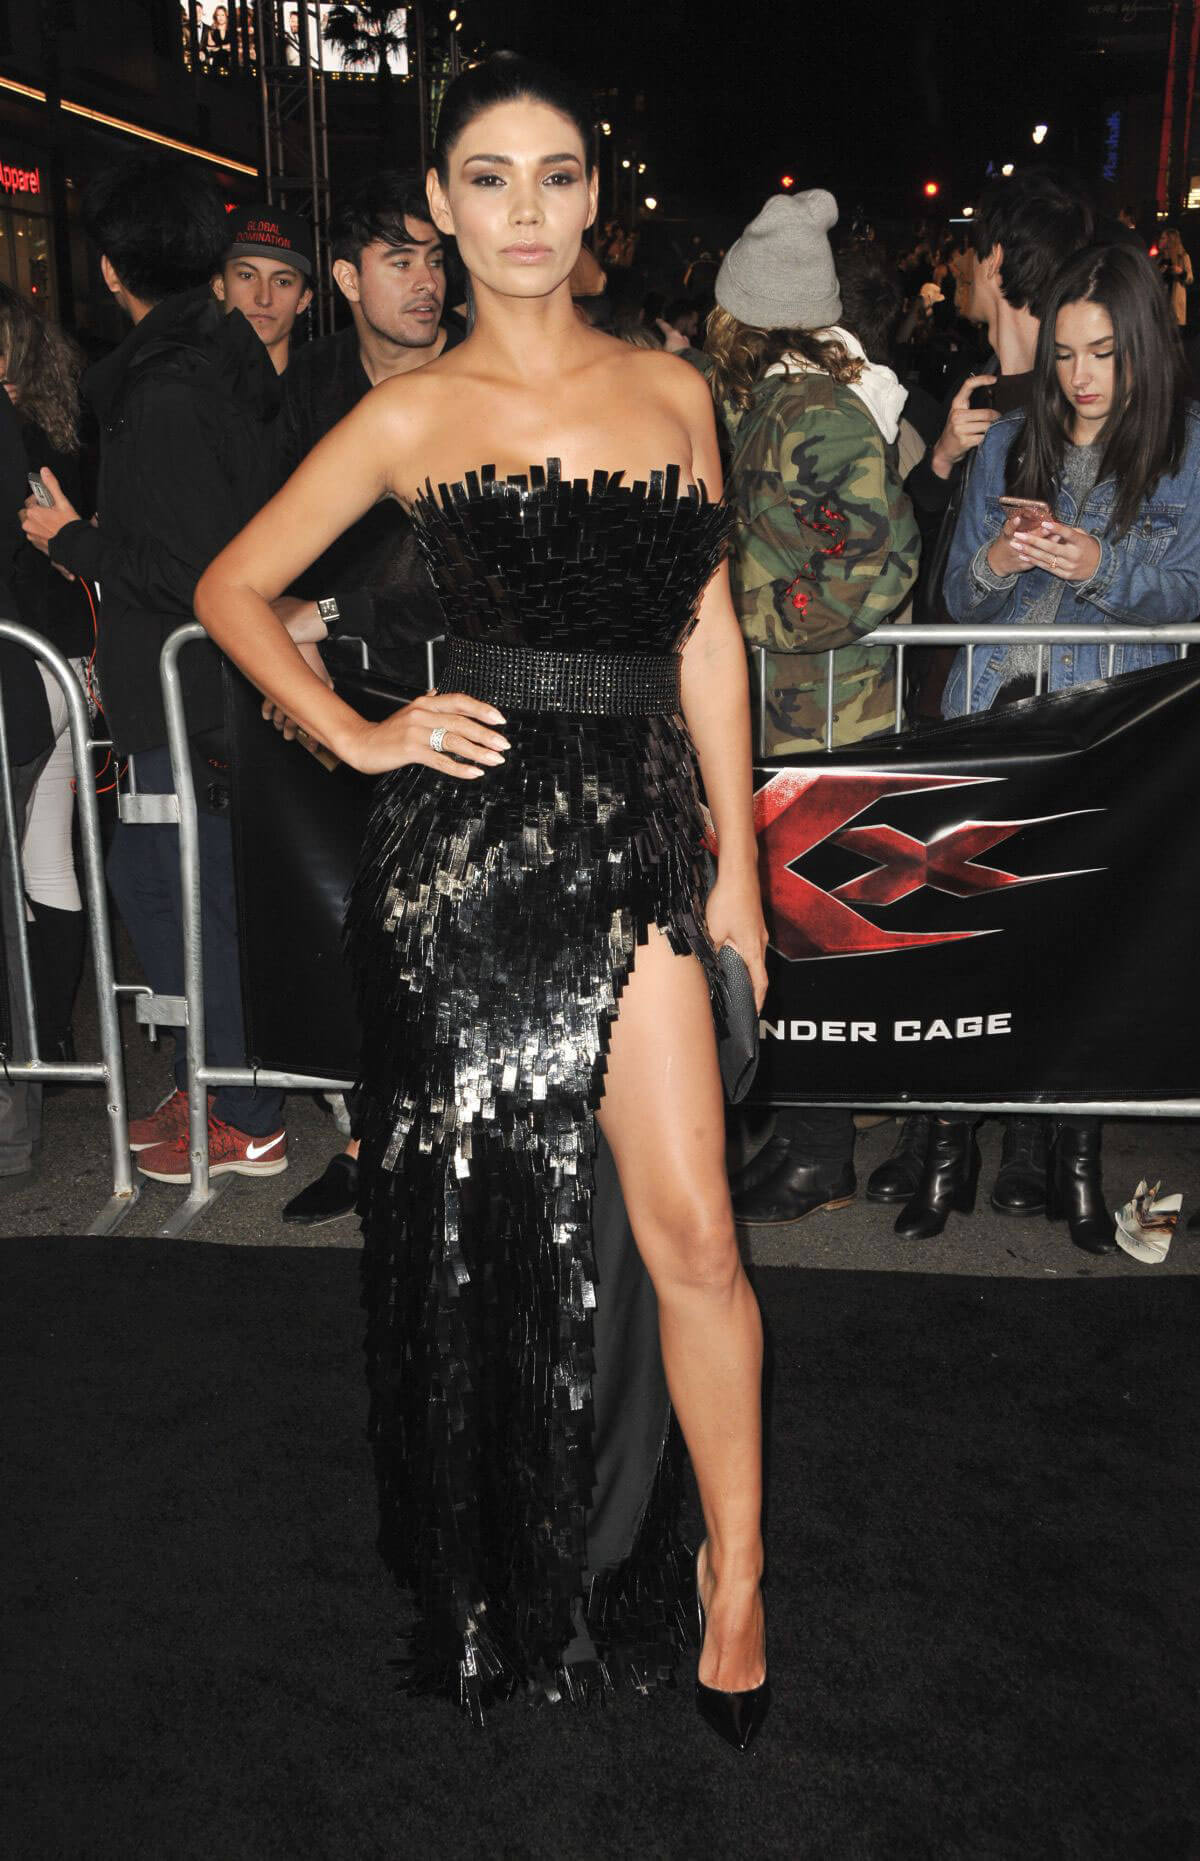 Paloma Jimenez at 'XXX - The Return of Xander Cage' Premiere in Hollywood